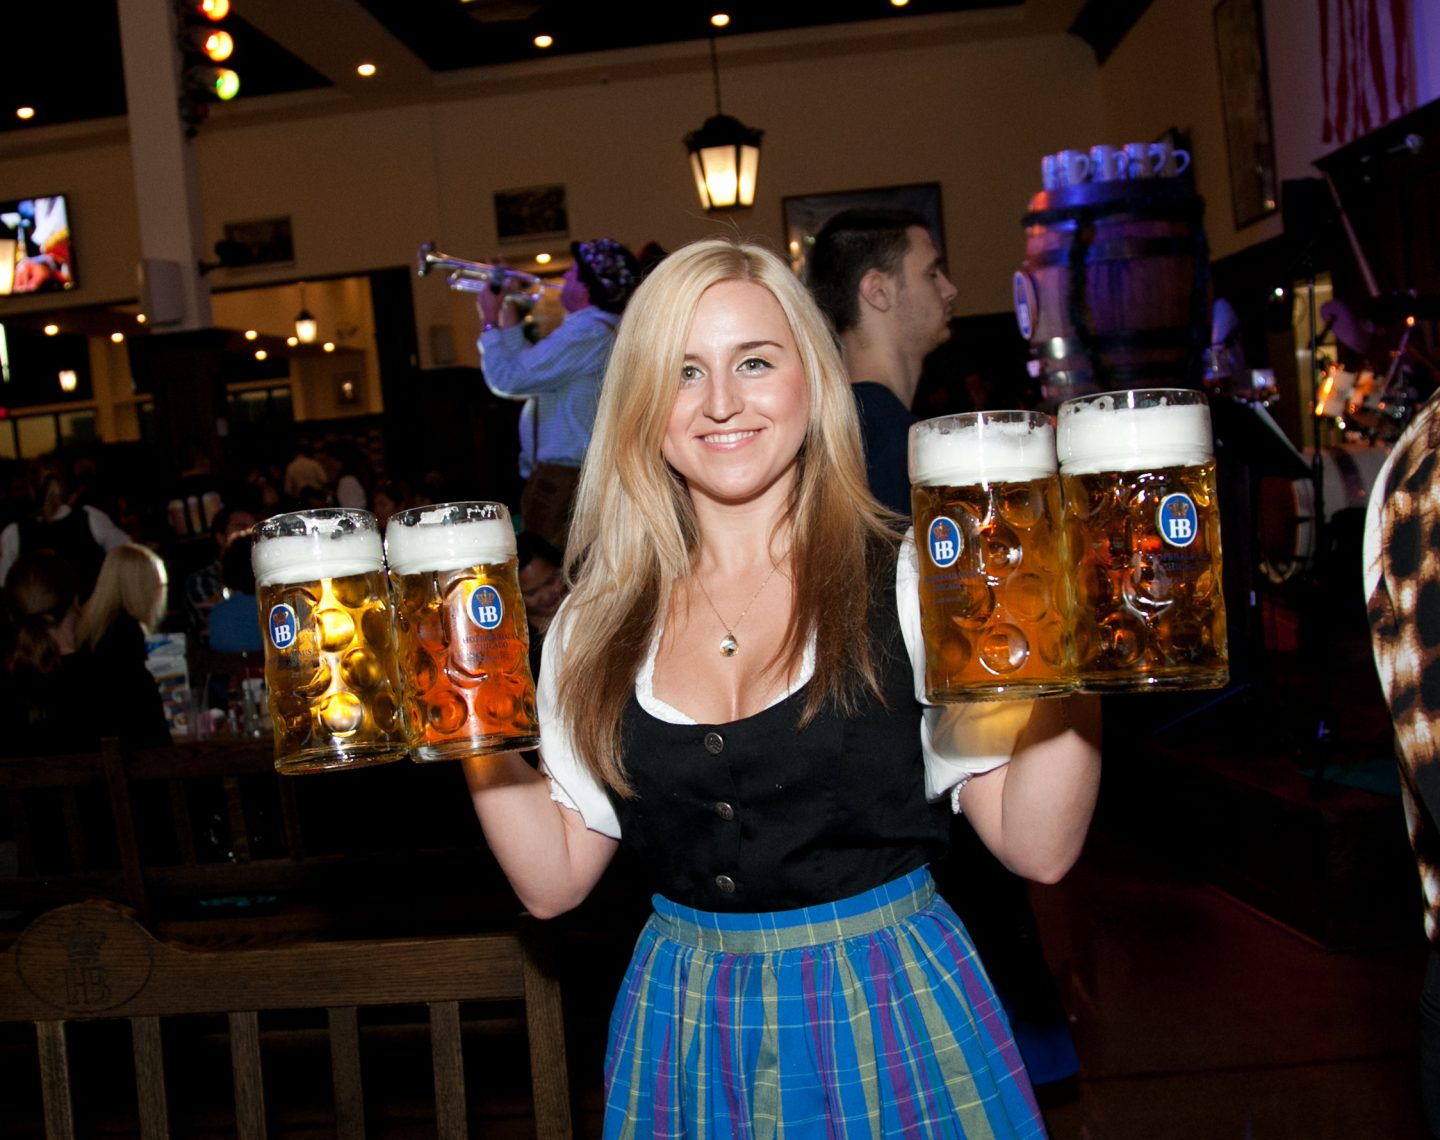 Waitress at Hofbrauhaus